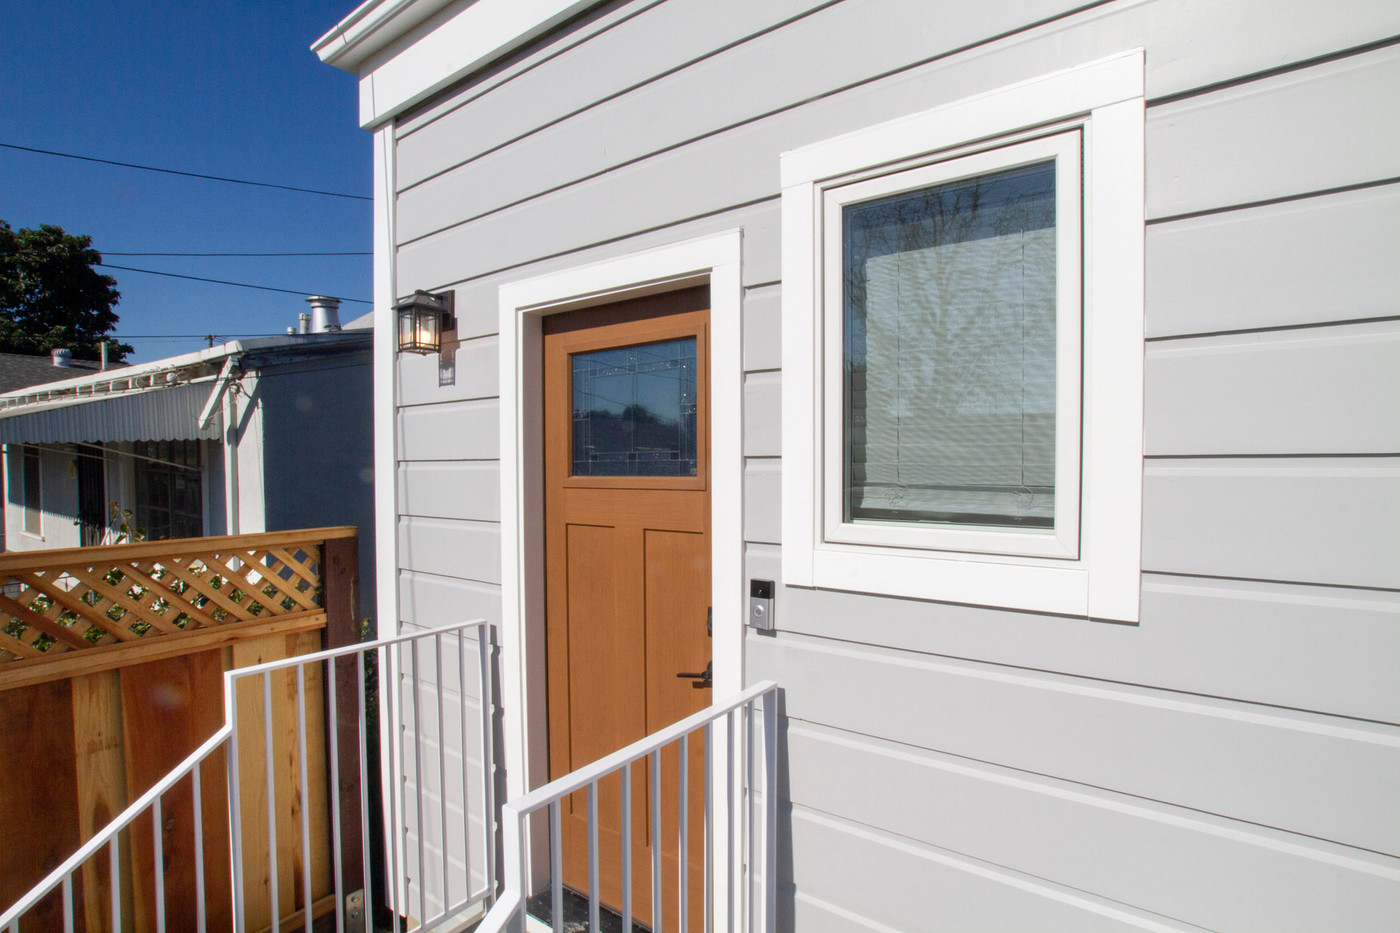 Window Replacement, New Siding, New Roofing - Fremont Homes